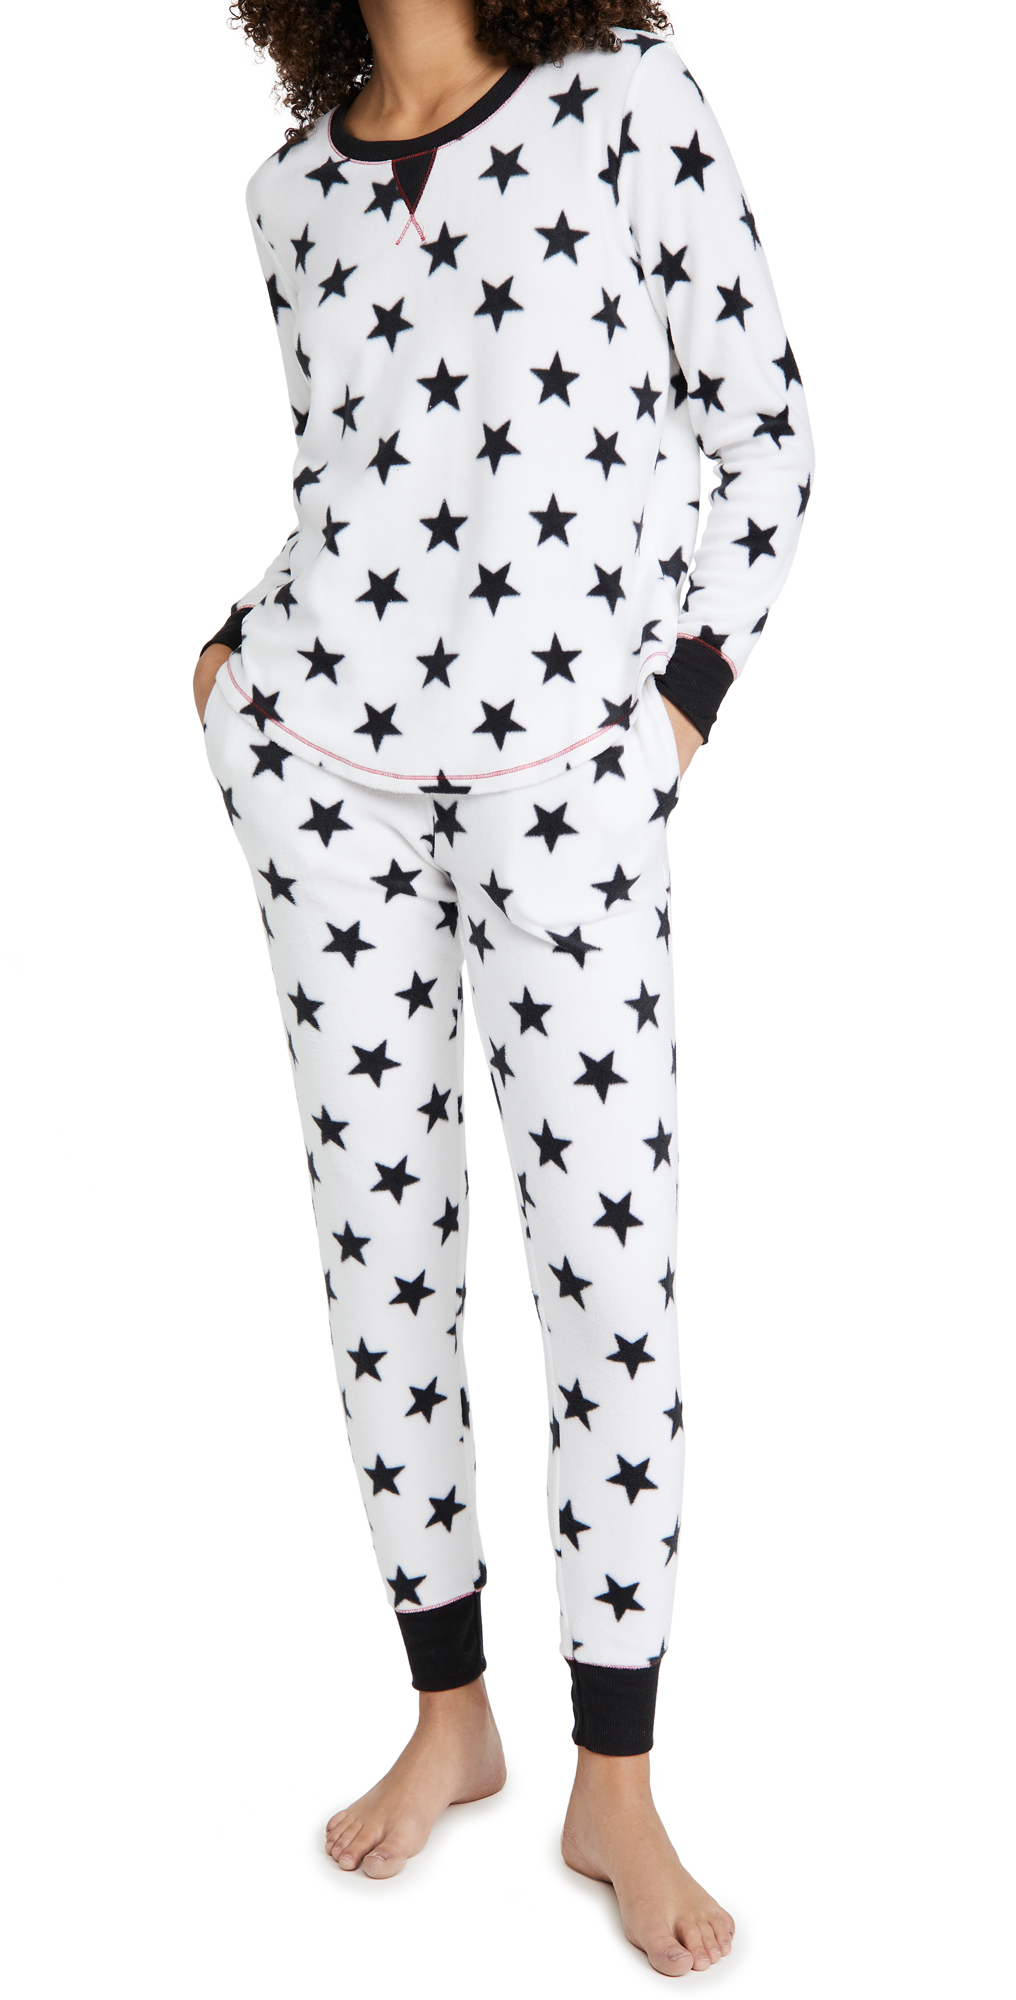 Emerson Road Biggest Star Long Sleeve PJ Set